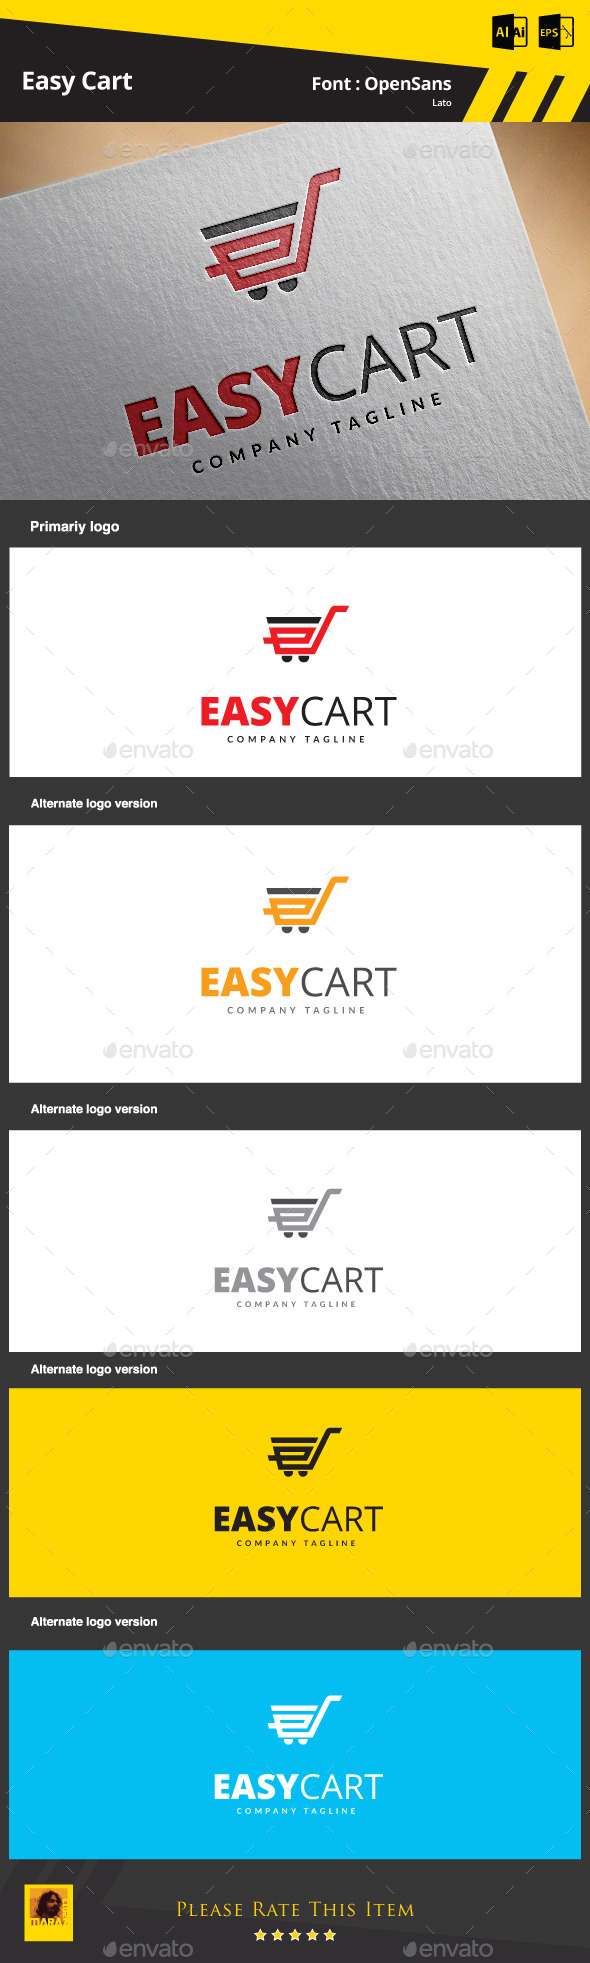 Easy Cart - Symbols Logo Templates